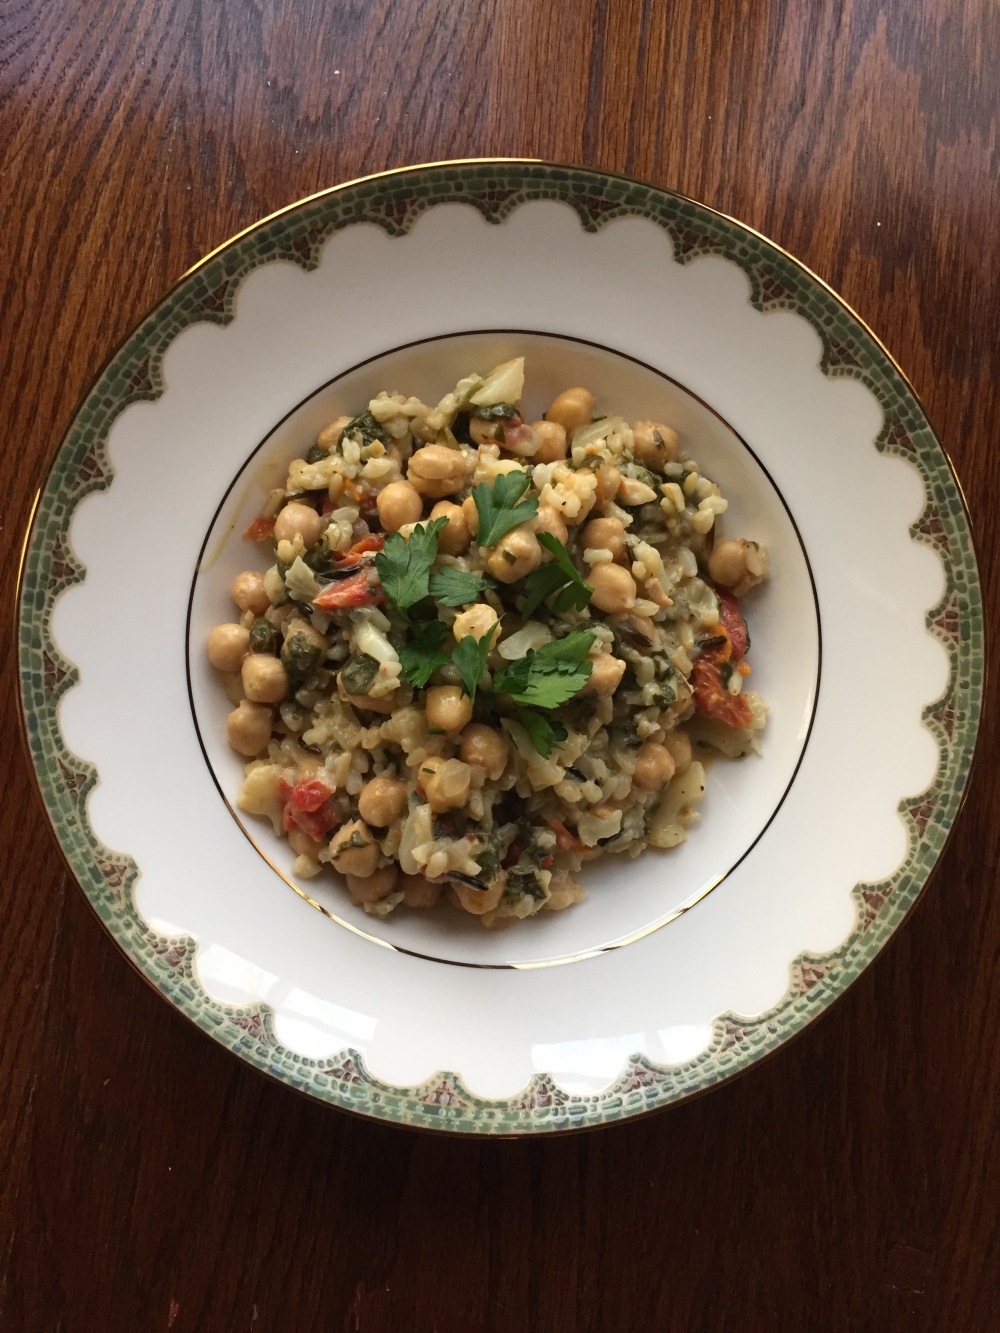 Braised Chickpea and Spinach with Lemon